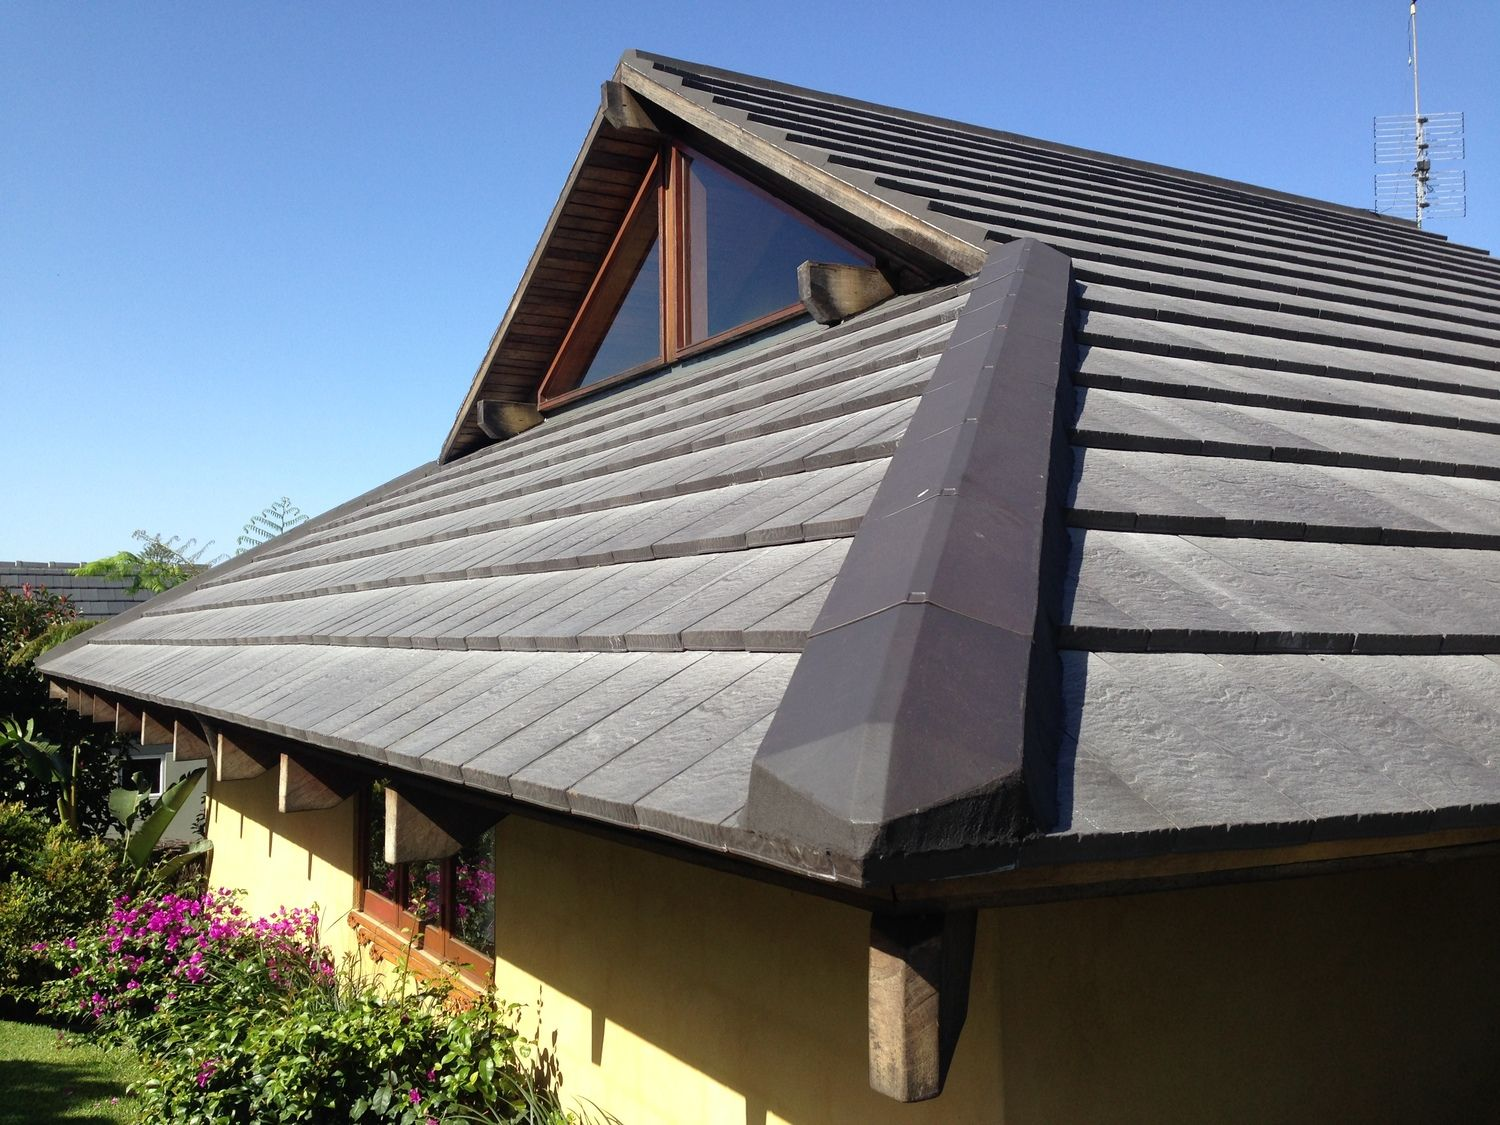 Slate Roof Tiles Installed And That Is The Ridge Cing Very Detailed Nicely Done Belmont Nsw Australia